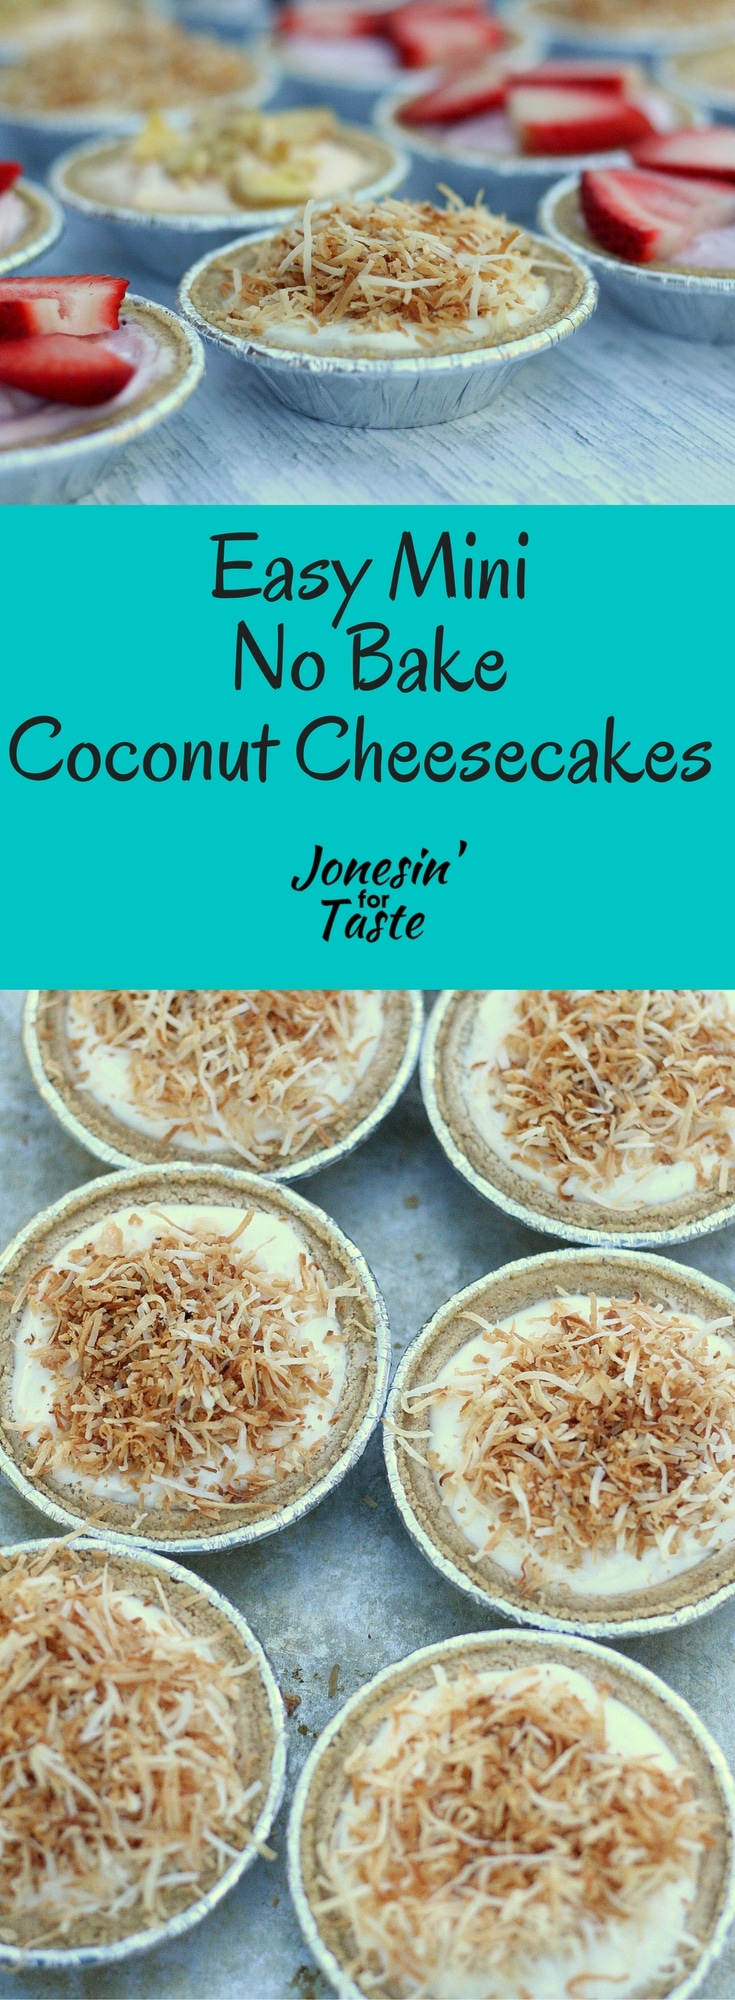 Easy No Bake Coconut Cheesecakes are a simple lighter take on the traditional cheesecakes in a perfect mini form for parties.